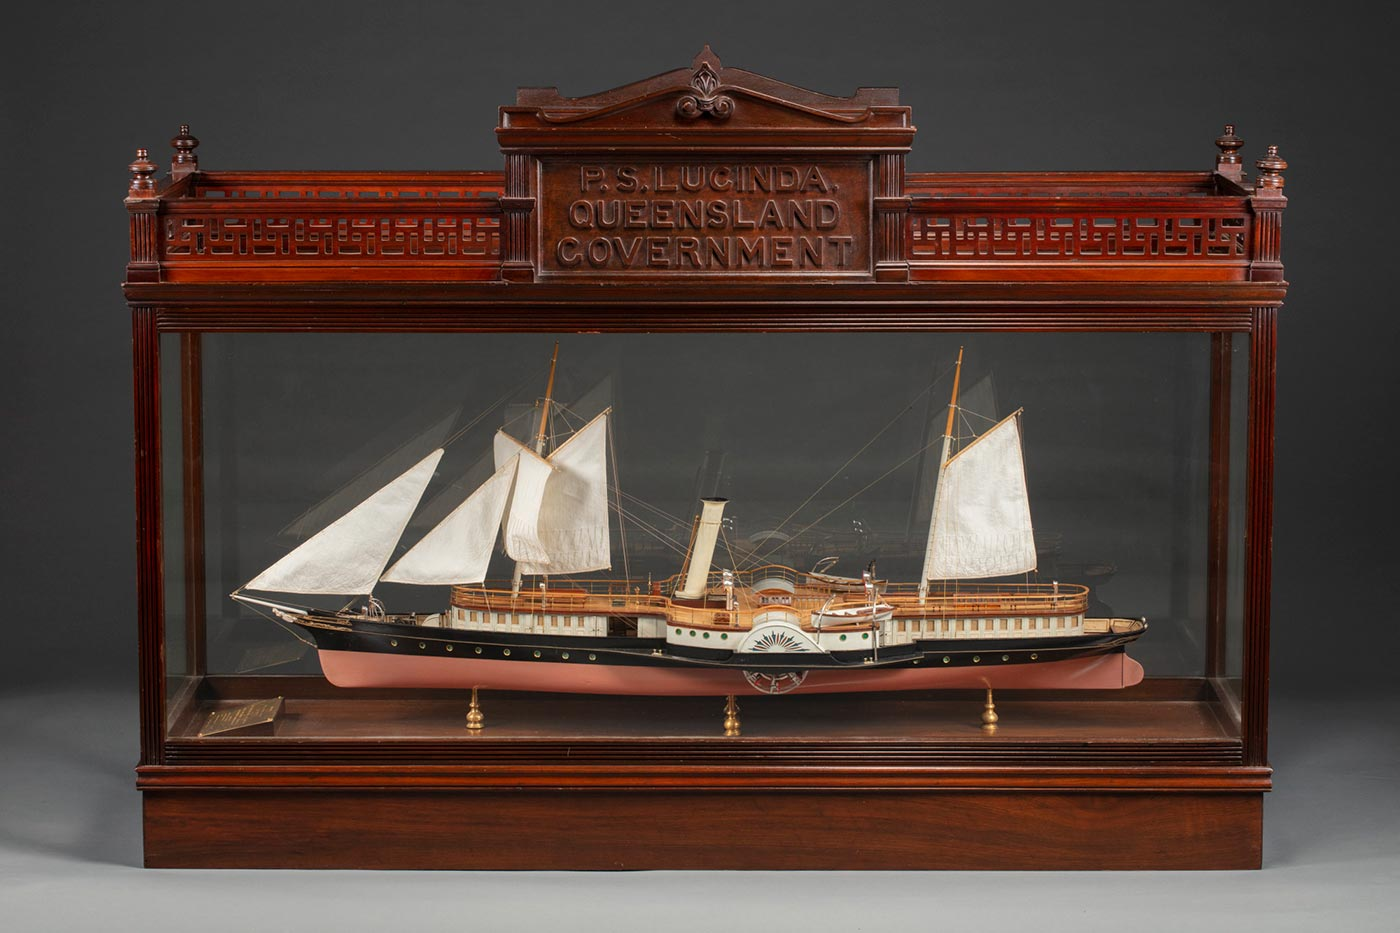 A model of a ship in a wood and glass case, the ship has five raised sails, water wheels on either side, painted in black and brown with details in blue and red, held on four gold coloured stands, and a gold plaque at one end. Th case is in good condition and has an engraved panel with the text: